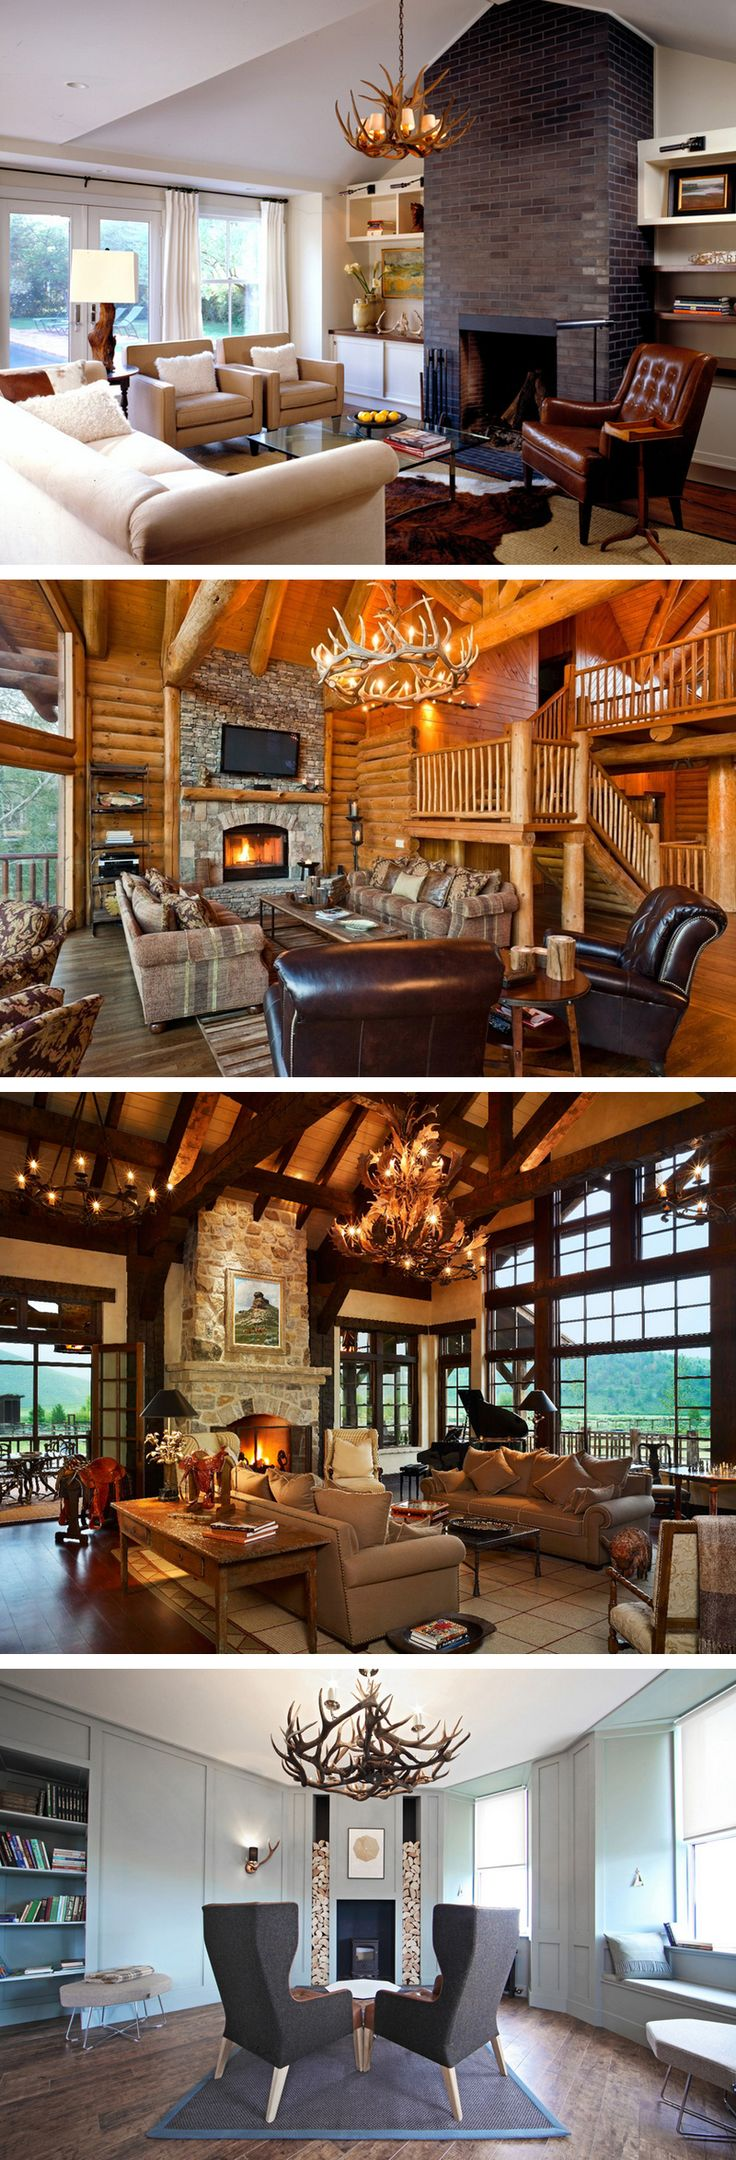 fascinating english style living room design | Fascinating Antler Chandeliers in 22 Interesting Living ...